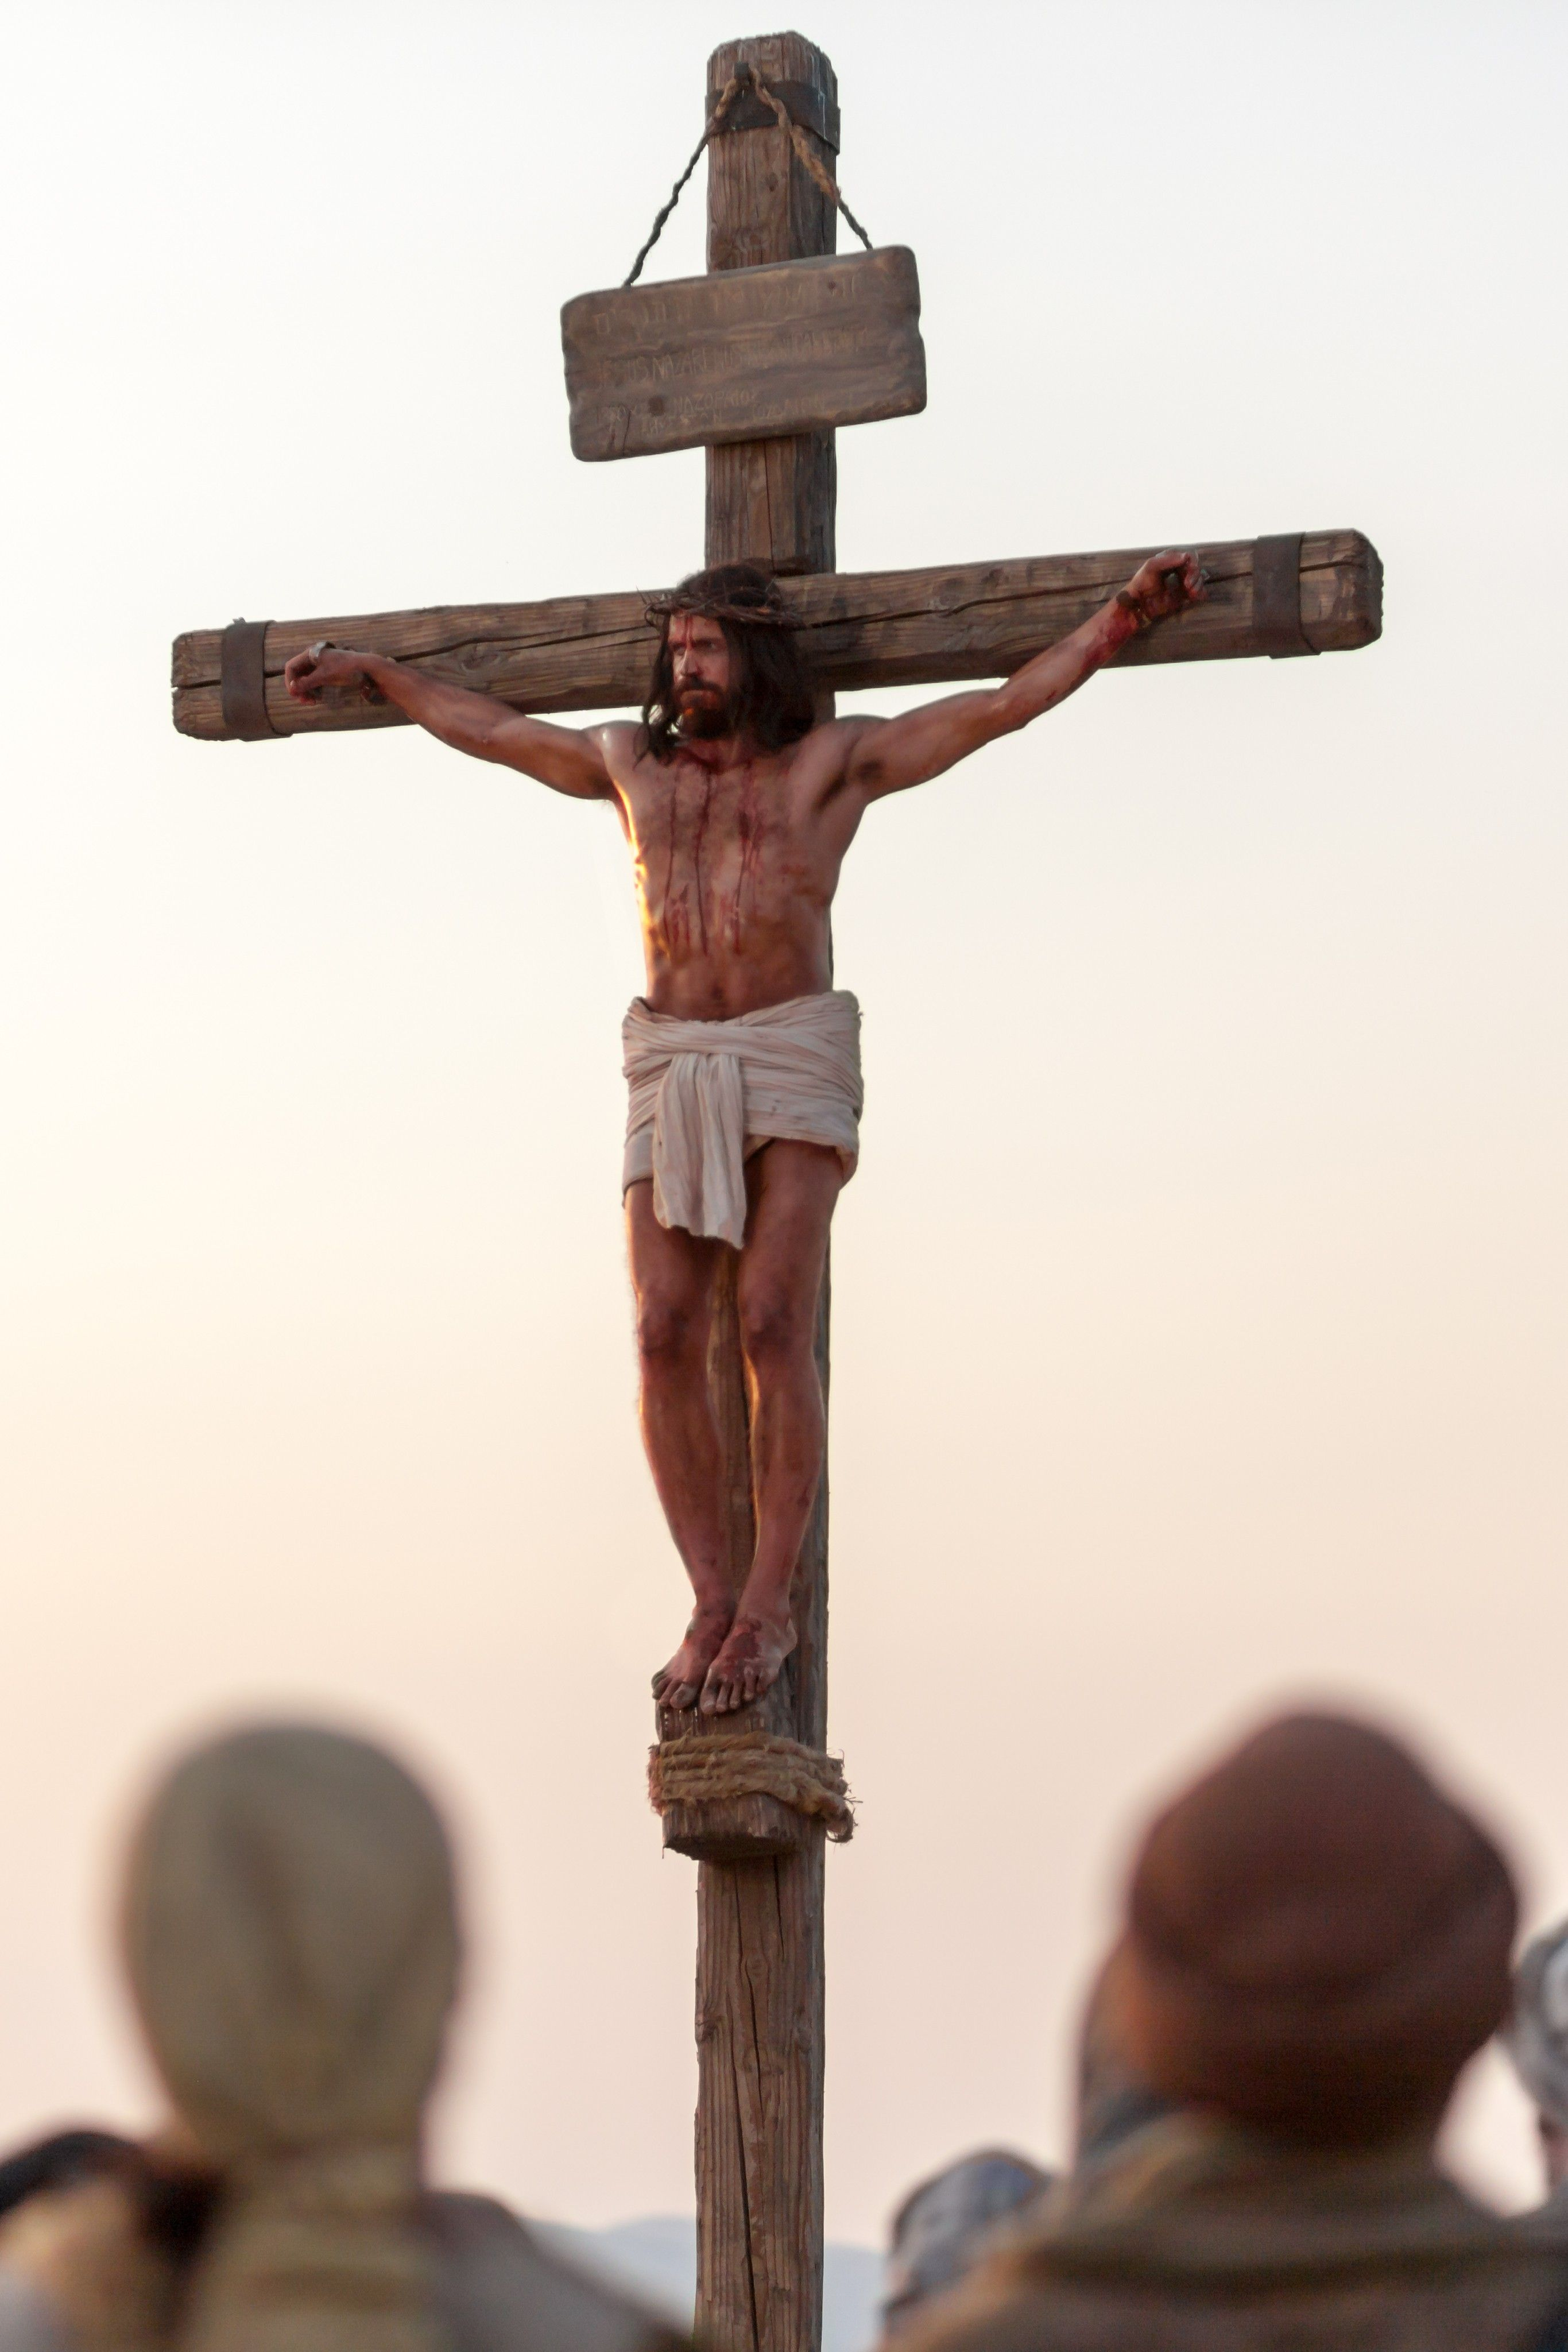 A detail of Jesus Christ on the cross at the time of His death.